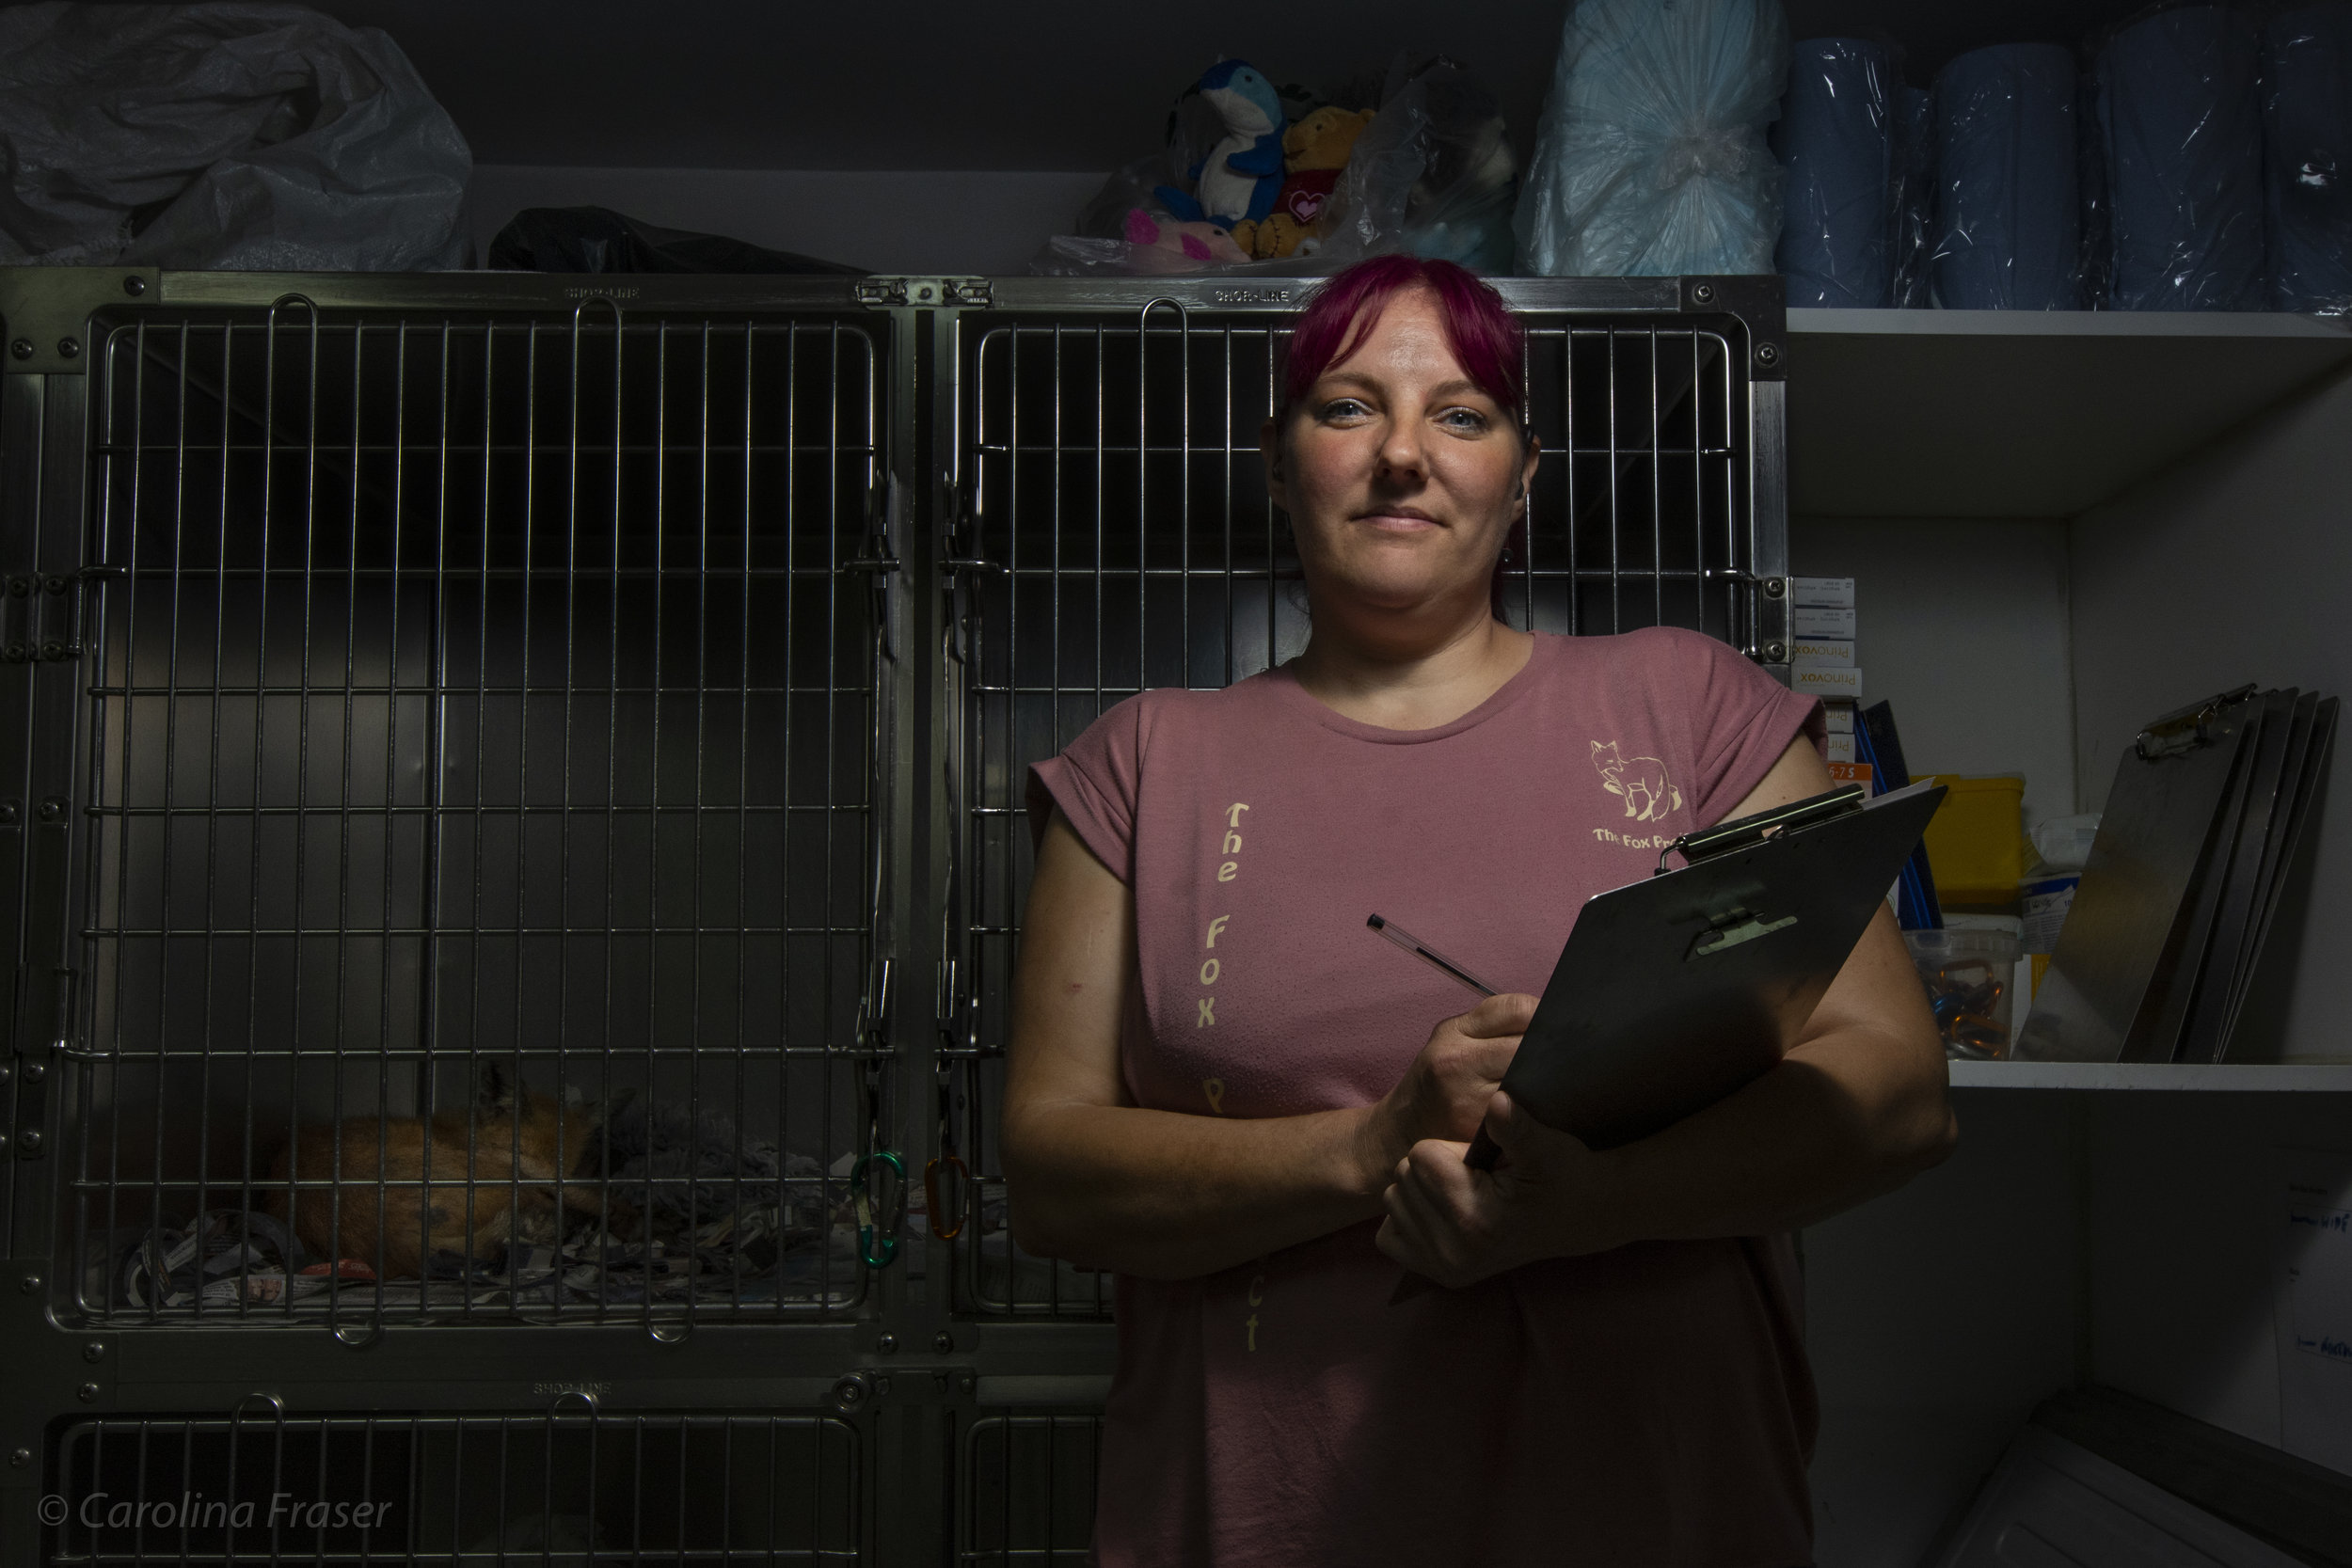 The Fox Project has two ambulances that are used to rescue and transport foxes. Taz Kenward is one of the ambulance drivers. She works with colleagues, volunteers and interns to treat around 800 foxes every year.